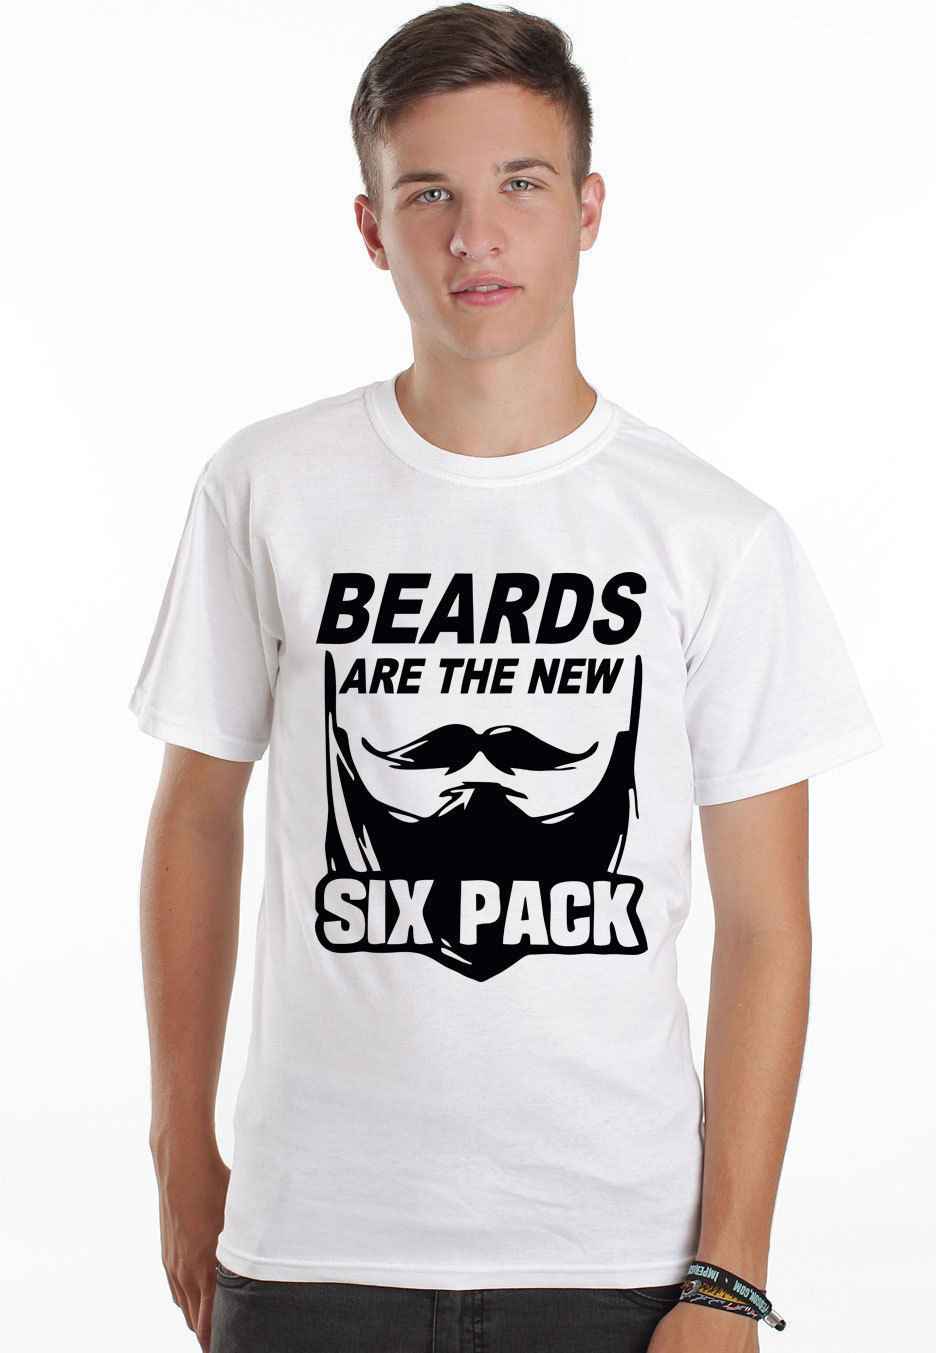 New T <font><b>Shirts</b></font> Funny Tops Tee New Unisex Funny Topsbeards are the new six pack muscle funny mens barber <font><b>shave</b></font> full colour t <font><b>shirt</b></font> image